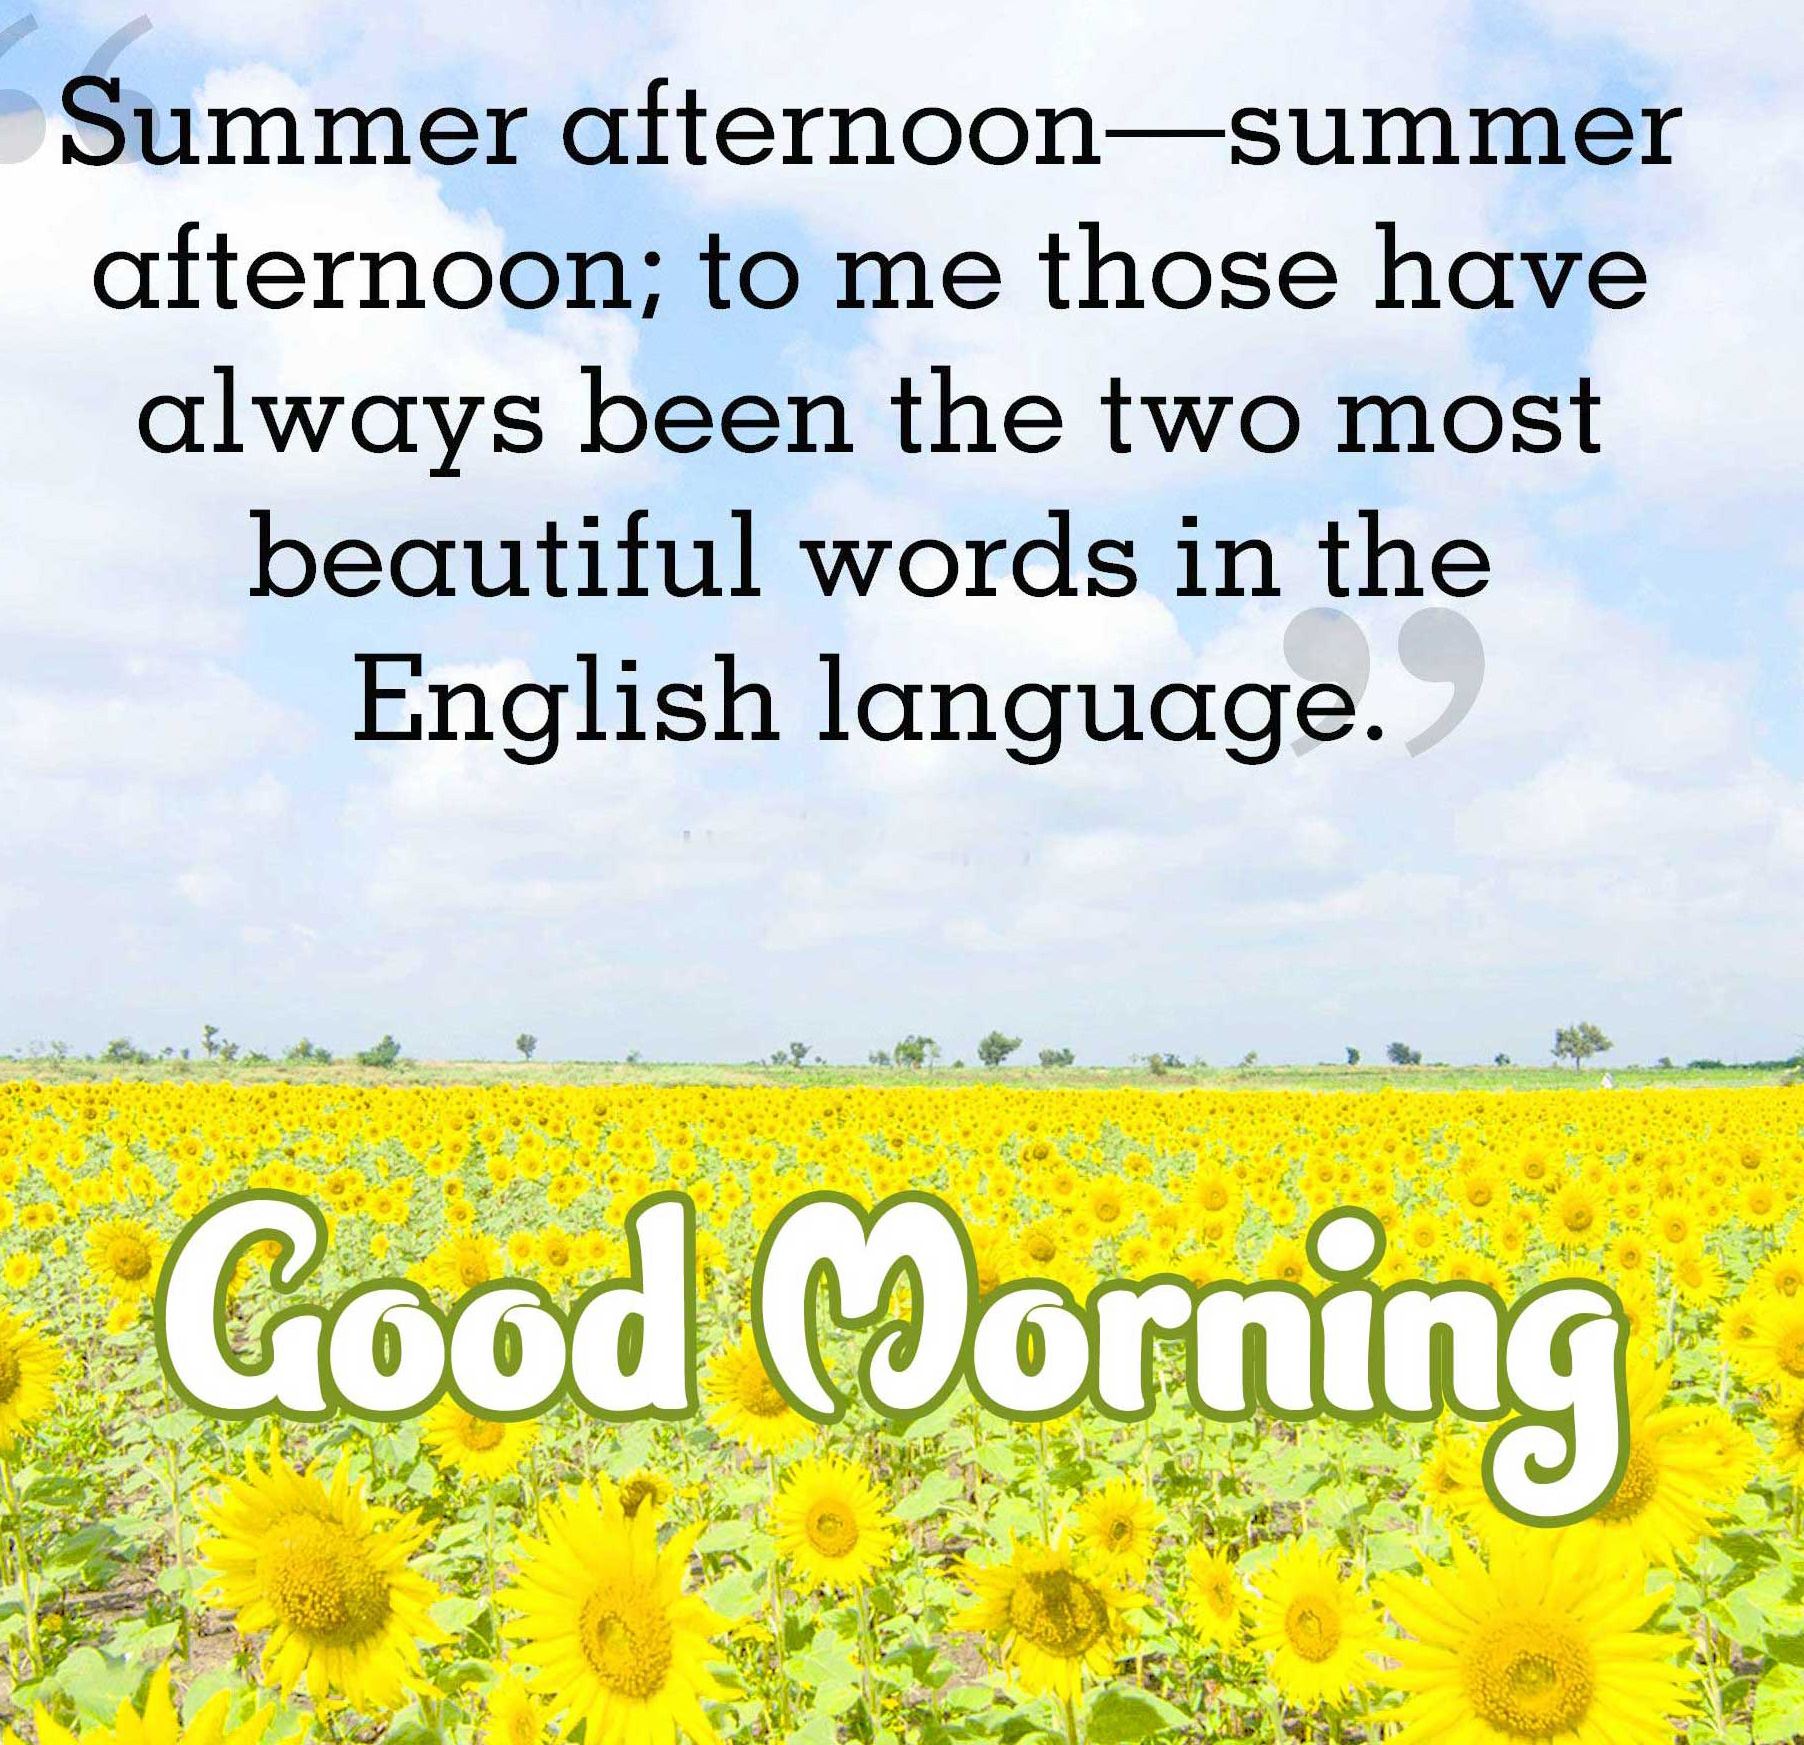 Best New Good Morning Wishes Images with positive thoughts Images Download